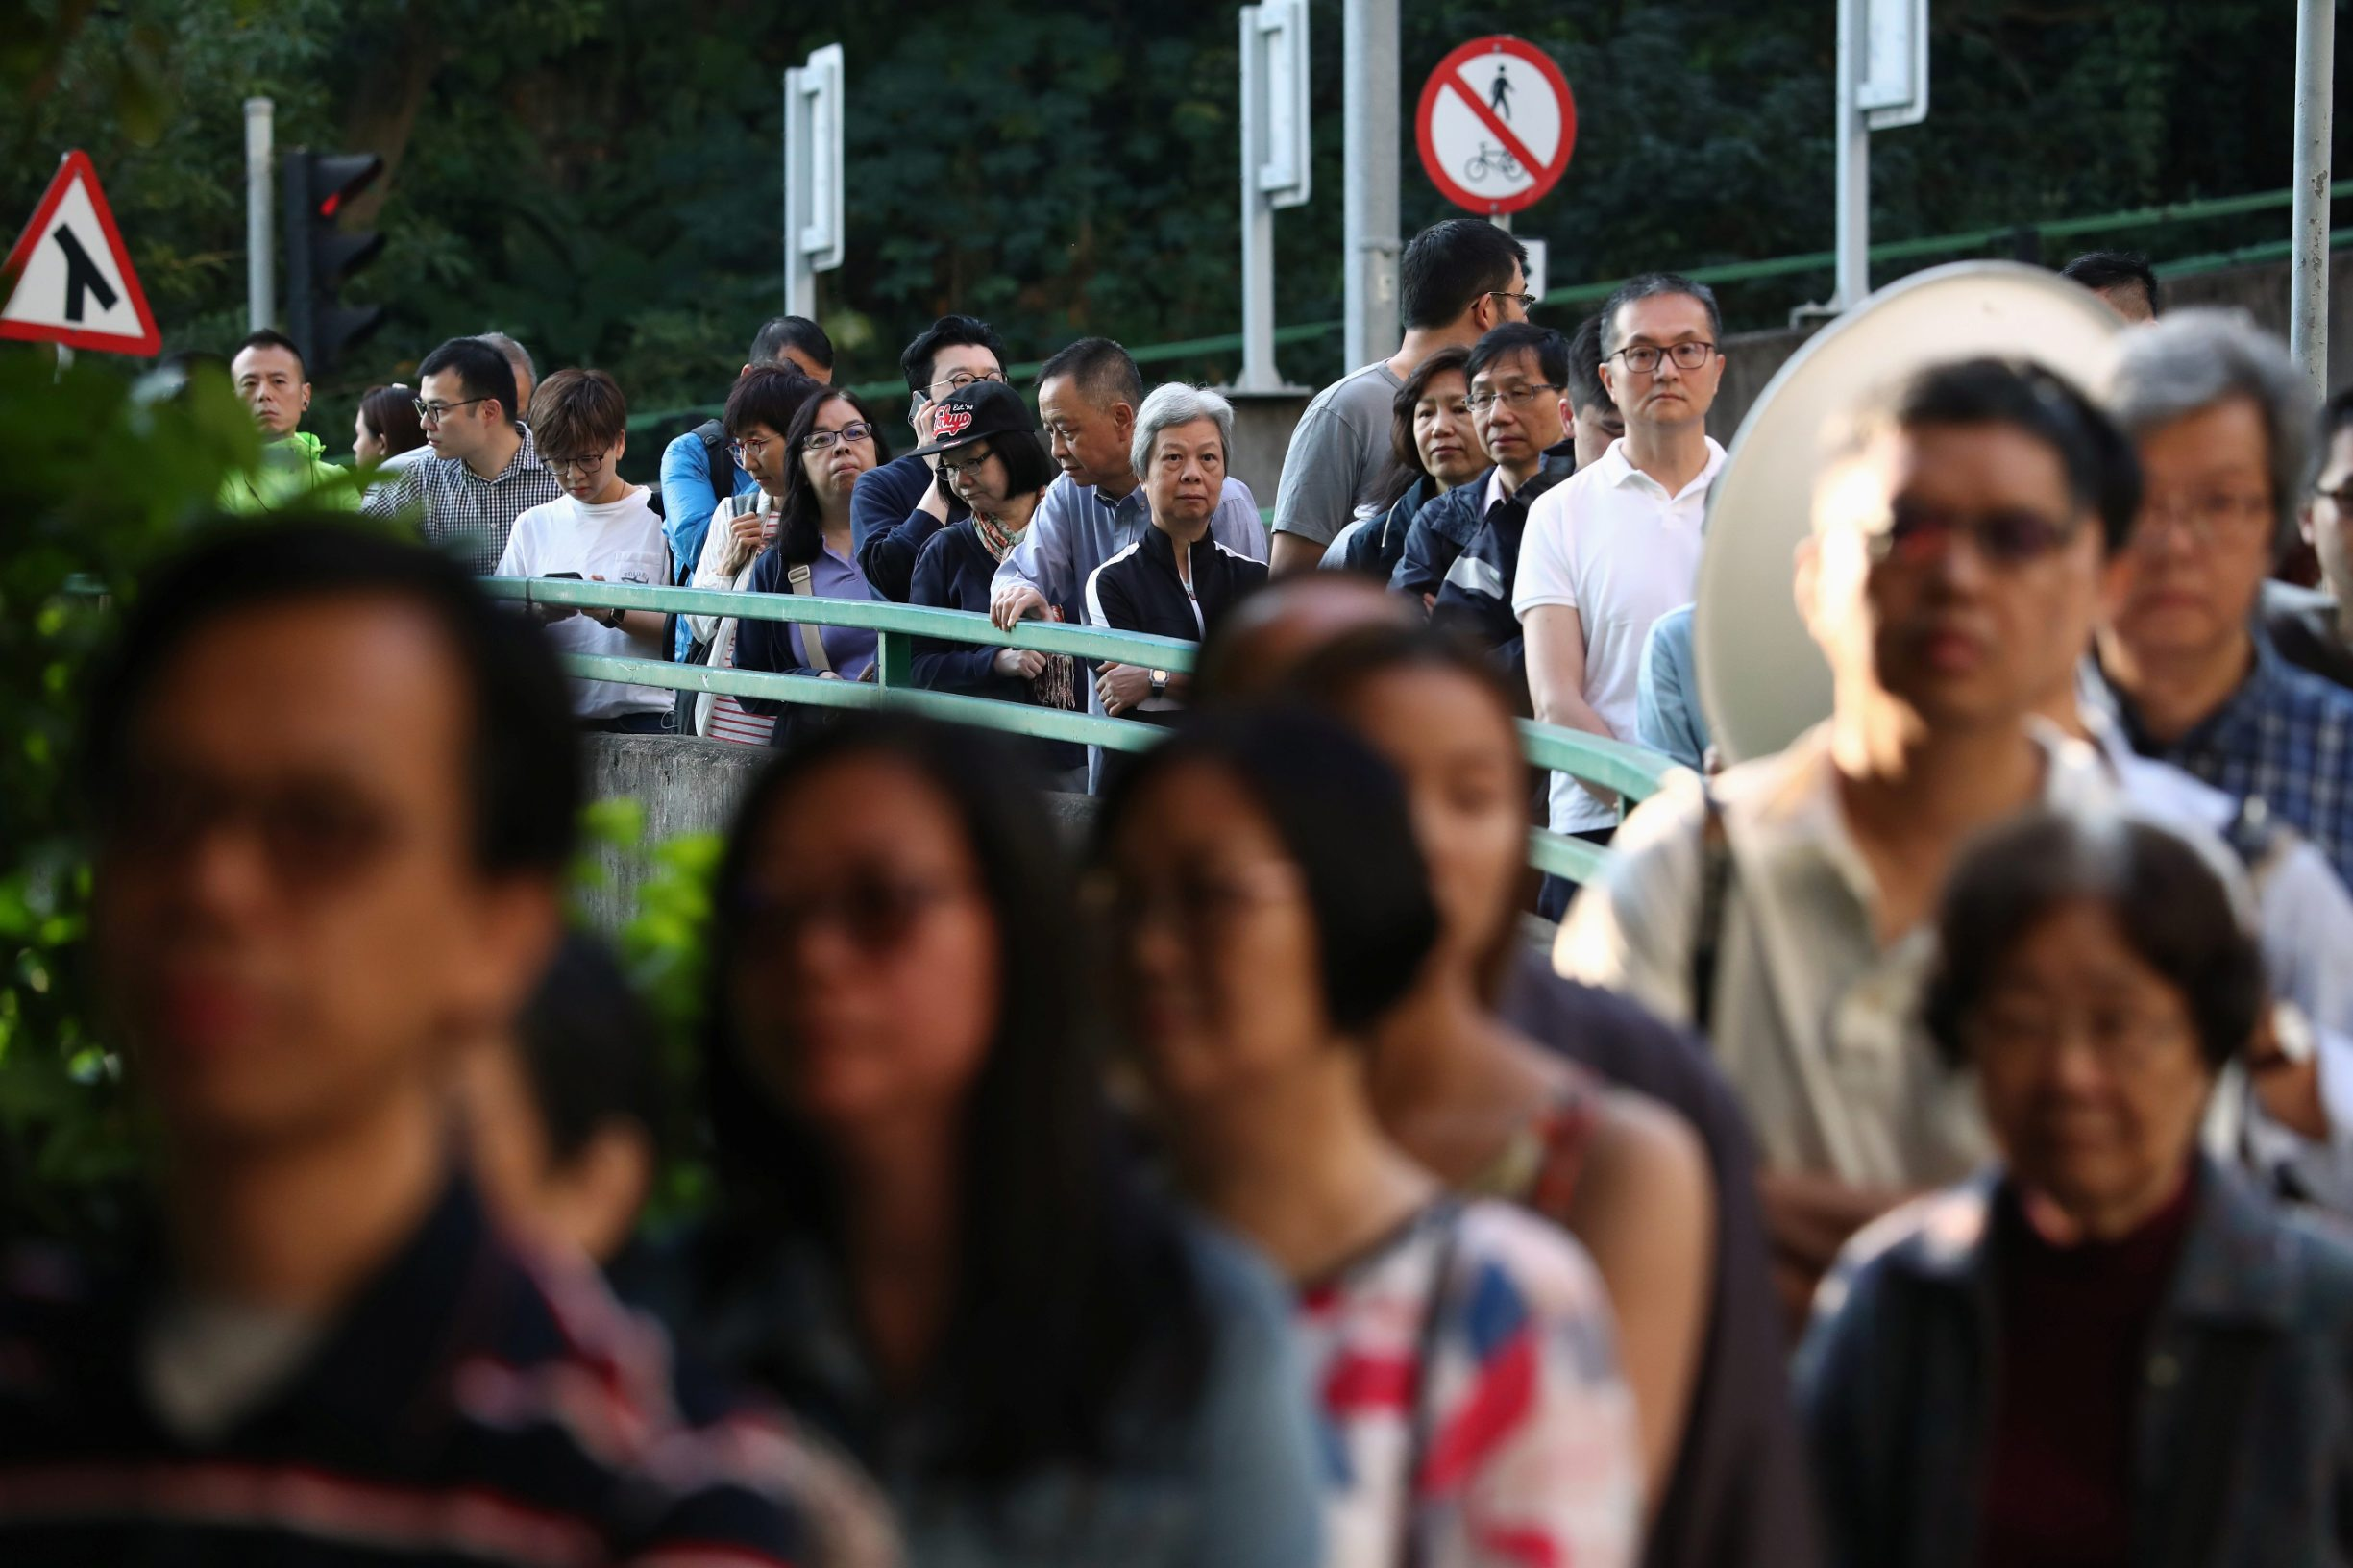 Voters line up at a polling station during district council local elections in Hong Kong, China November 24, 2019. REUTERS/Athit Perawongmetha